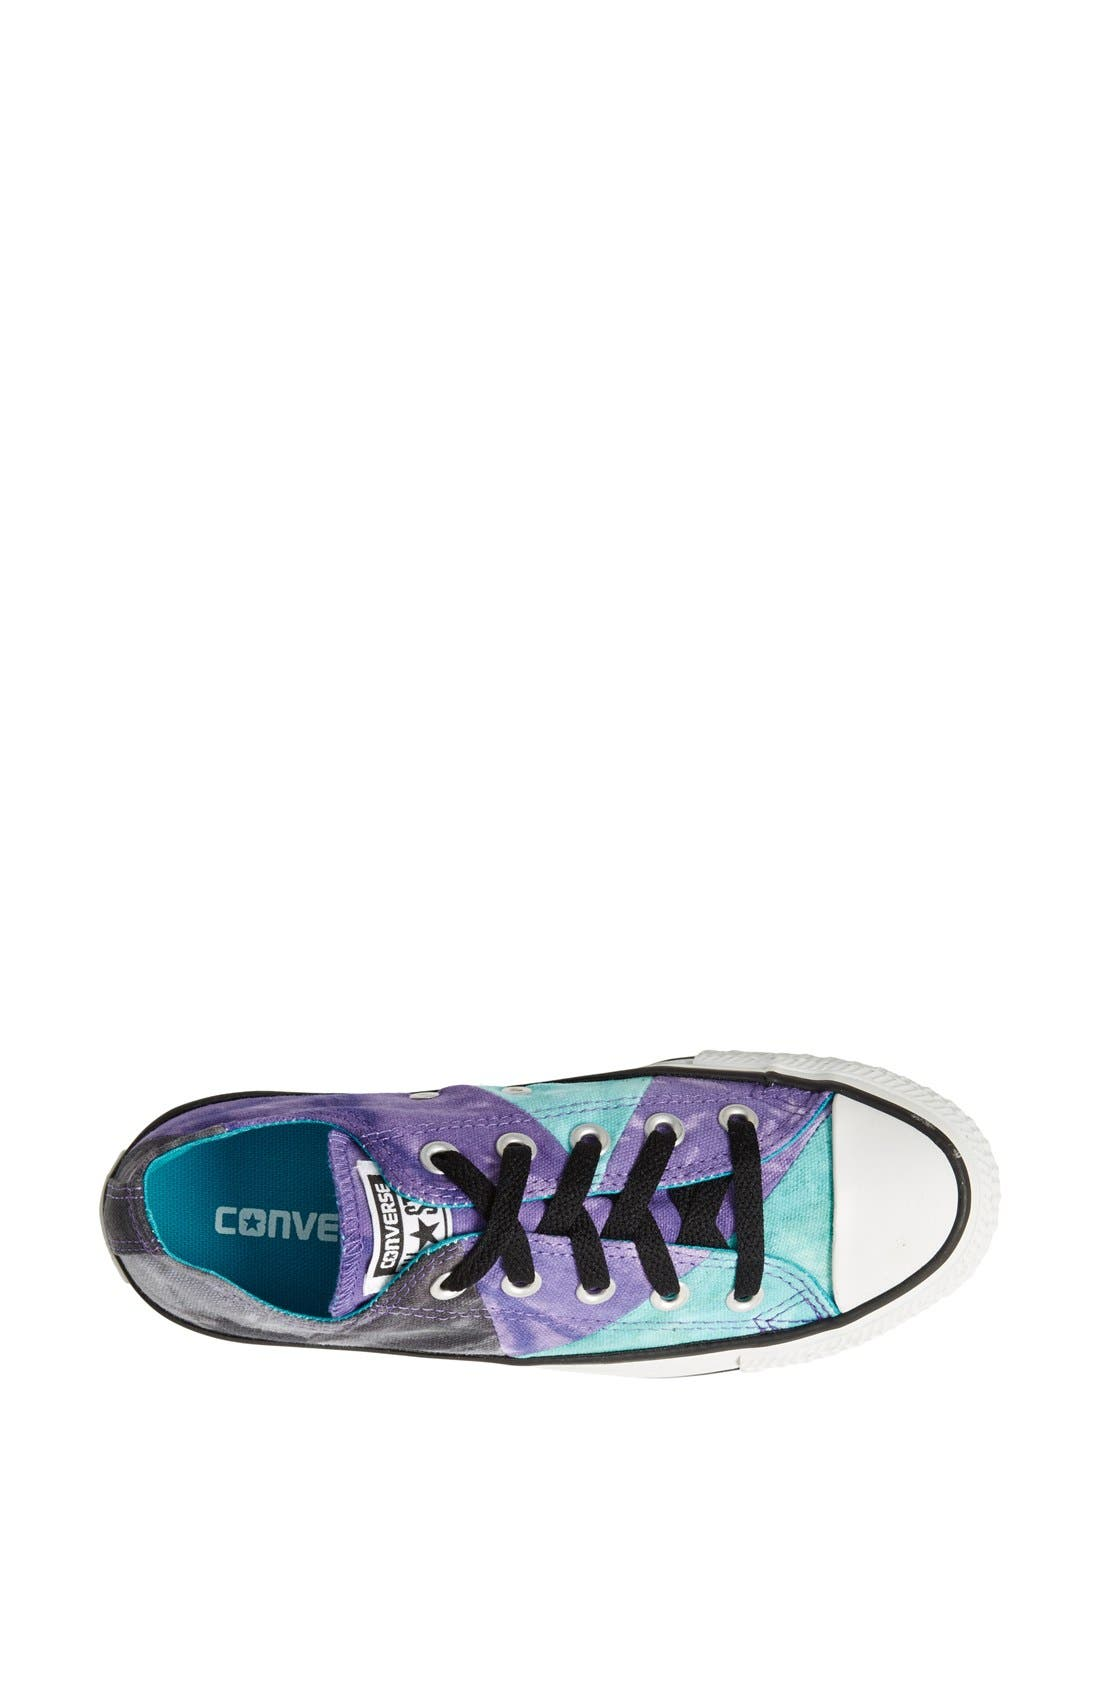 Alternate Image 3  - Converse Chuck Taylor® All Star® 'Multi Panel' Low Top Sneaker (Women)